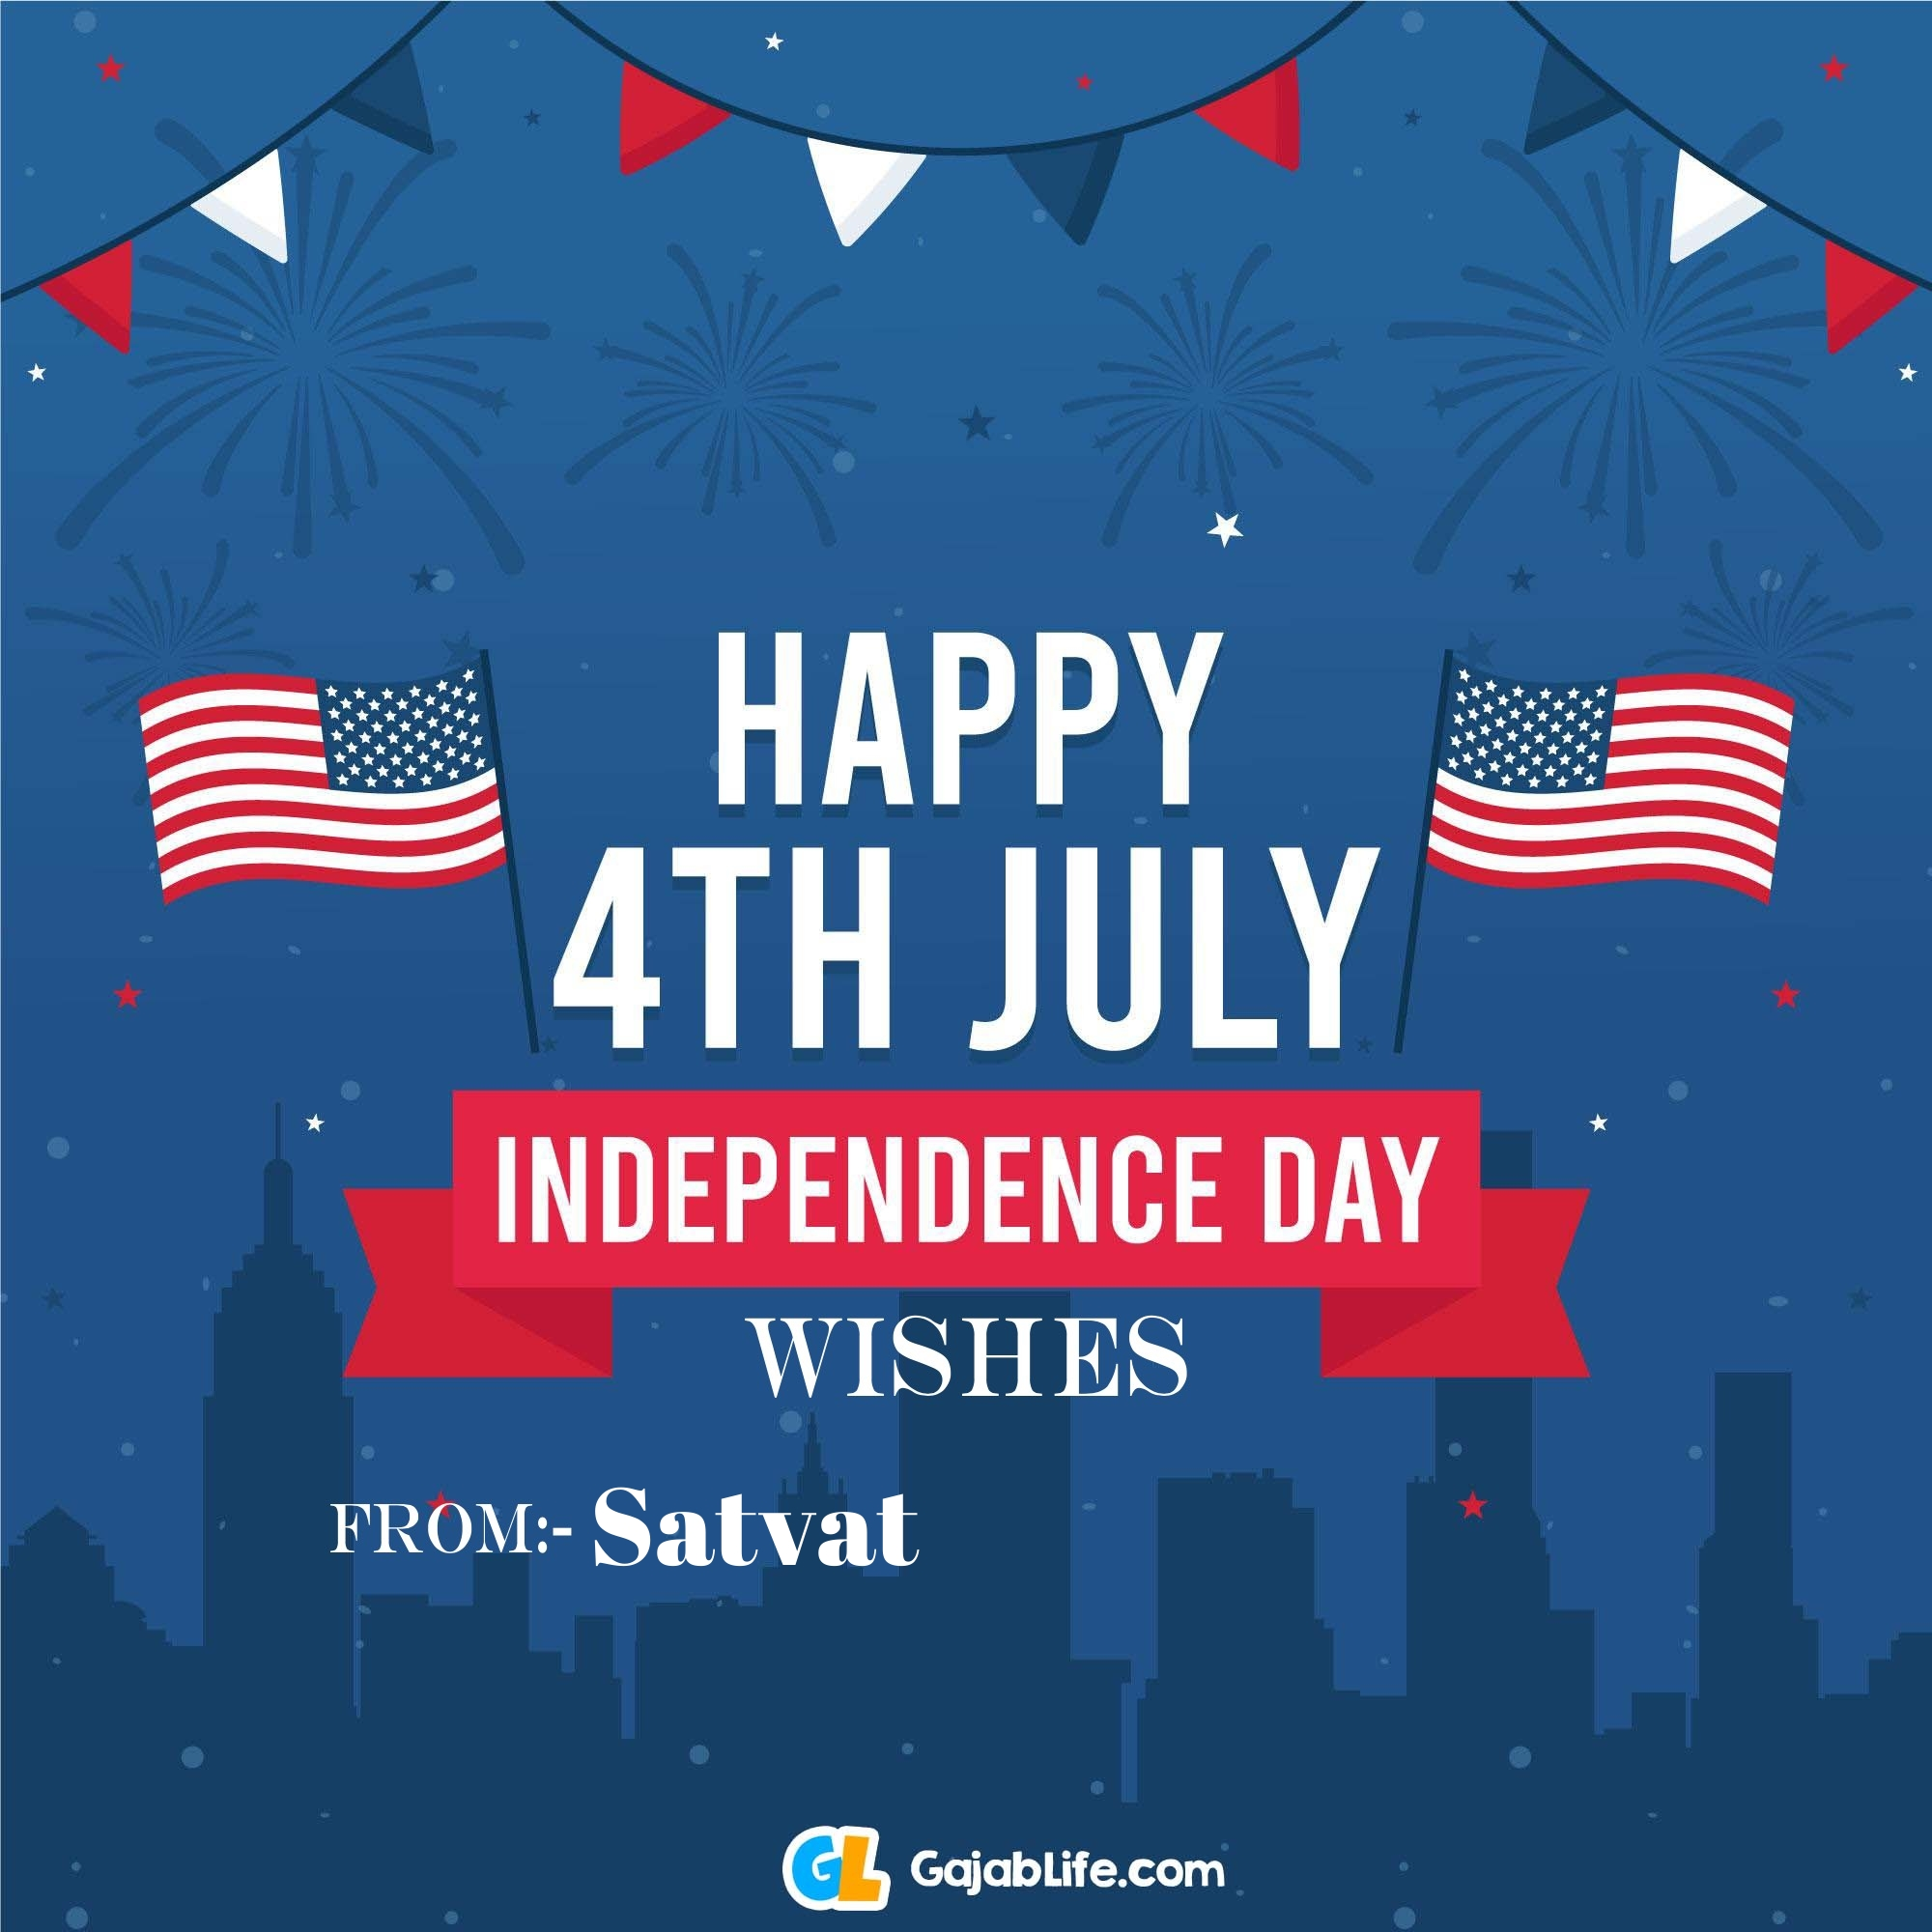 Satvat happy independence day united states of america images